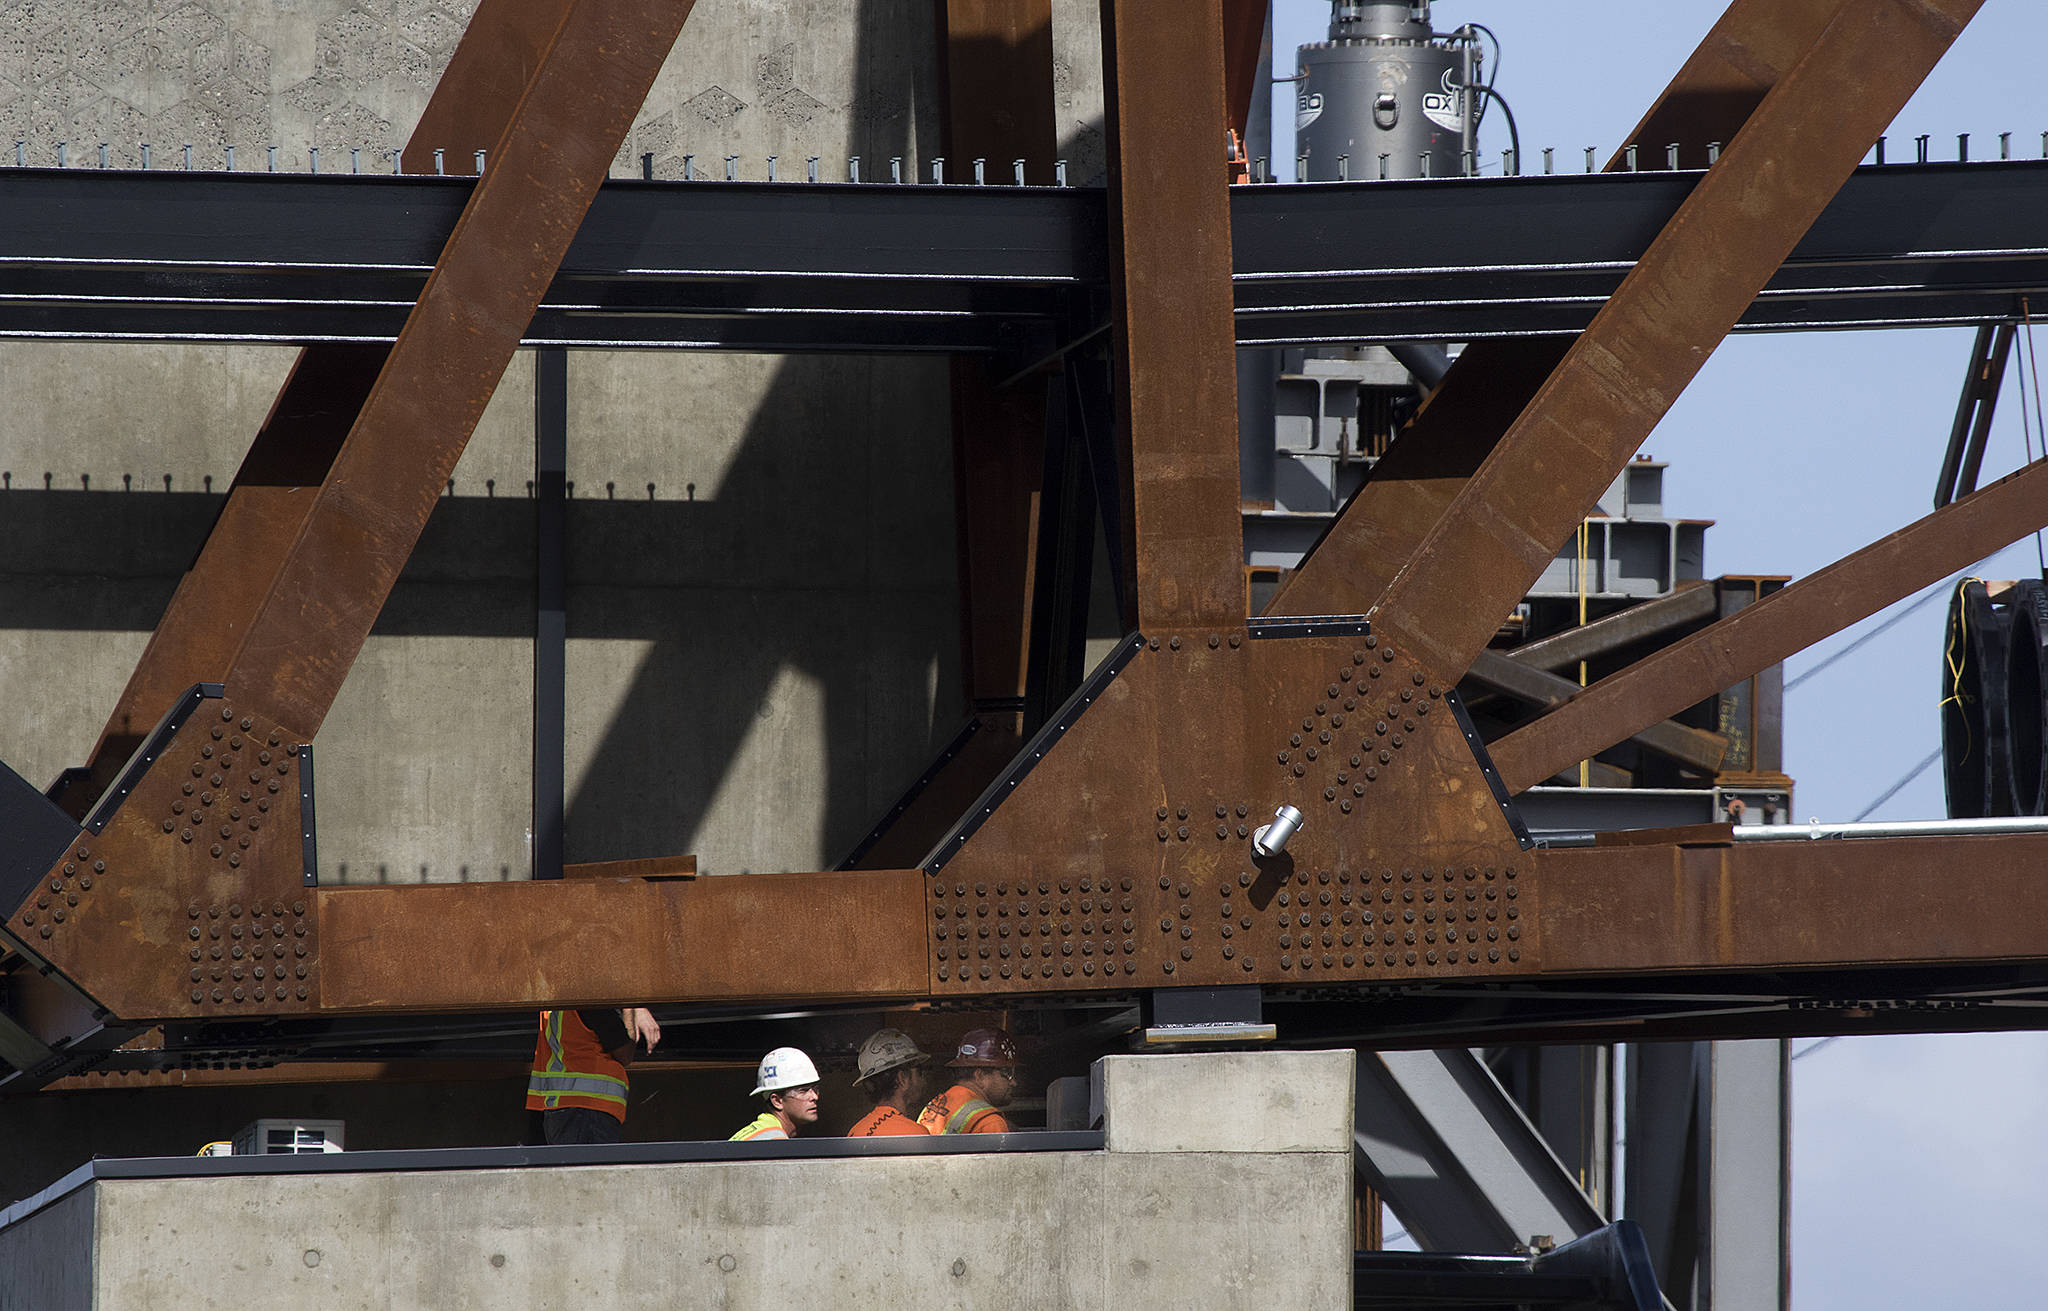 Workers watch from below as the $20 million Grand Avenue Park Bridge was slowly lowered into place above Marine View Drive on Wednesday in Everett. (Andy Bronson / The Herald)